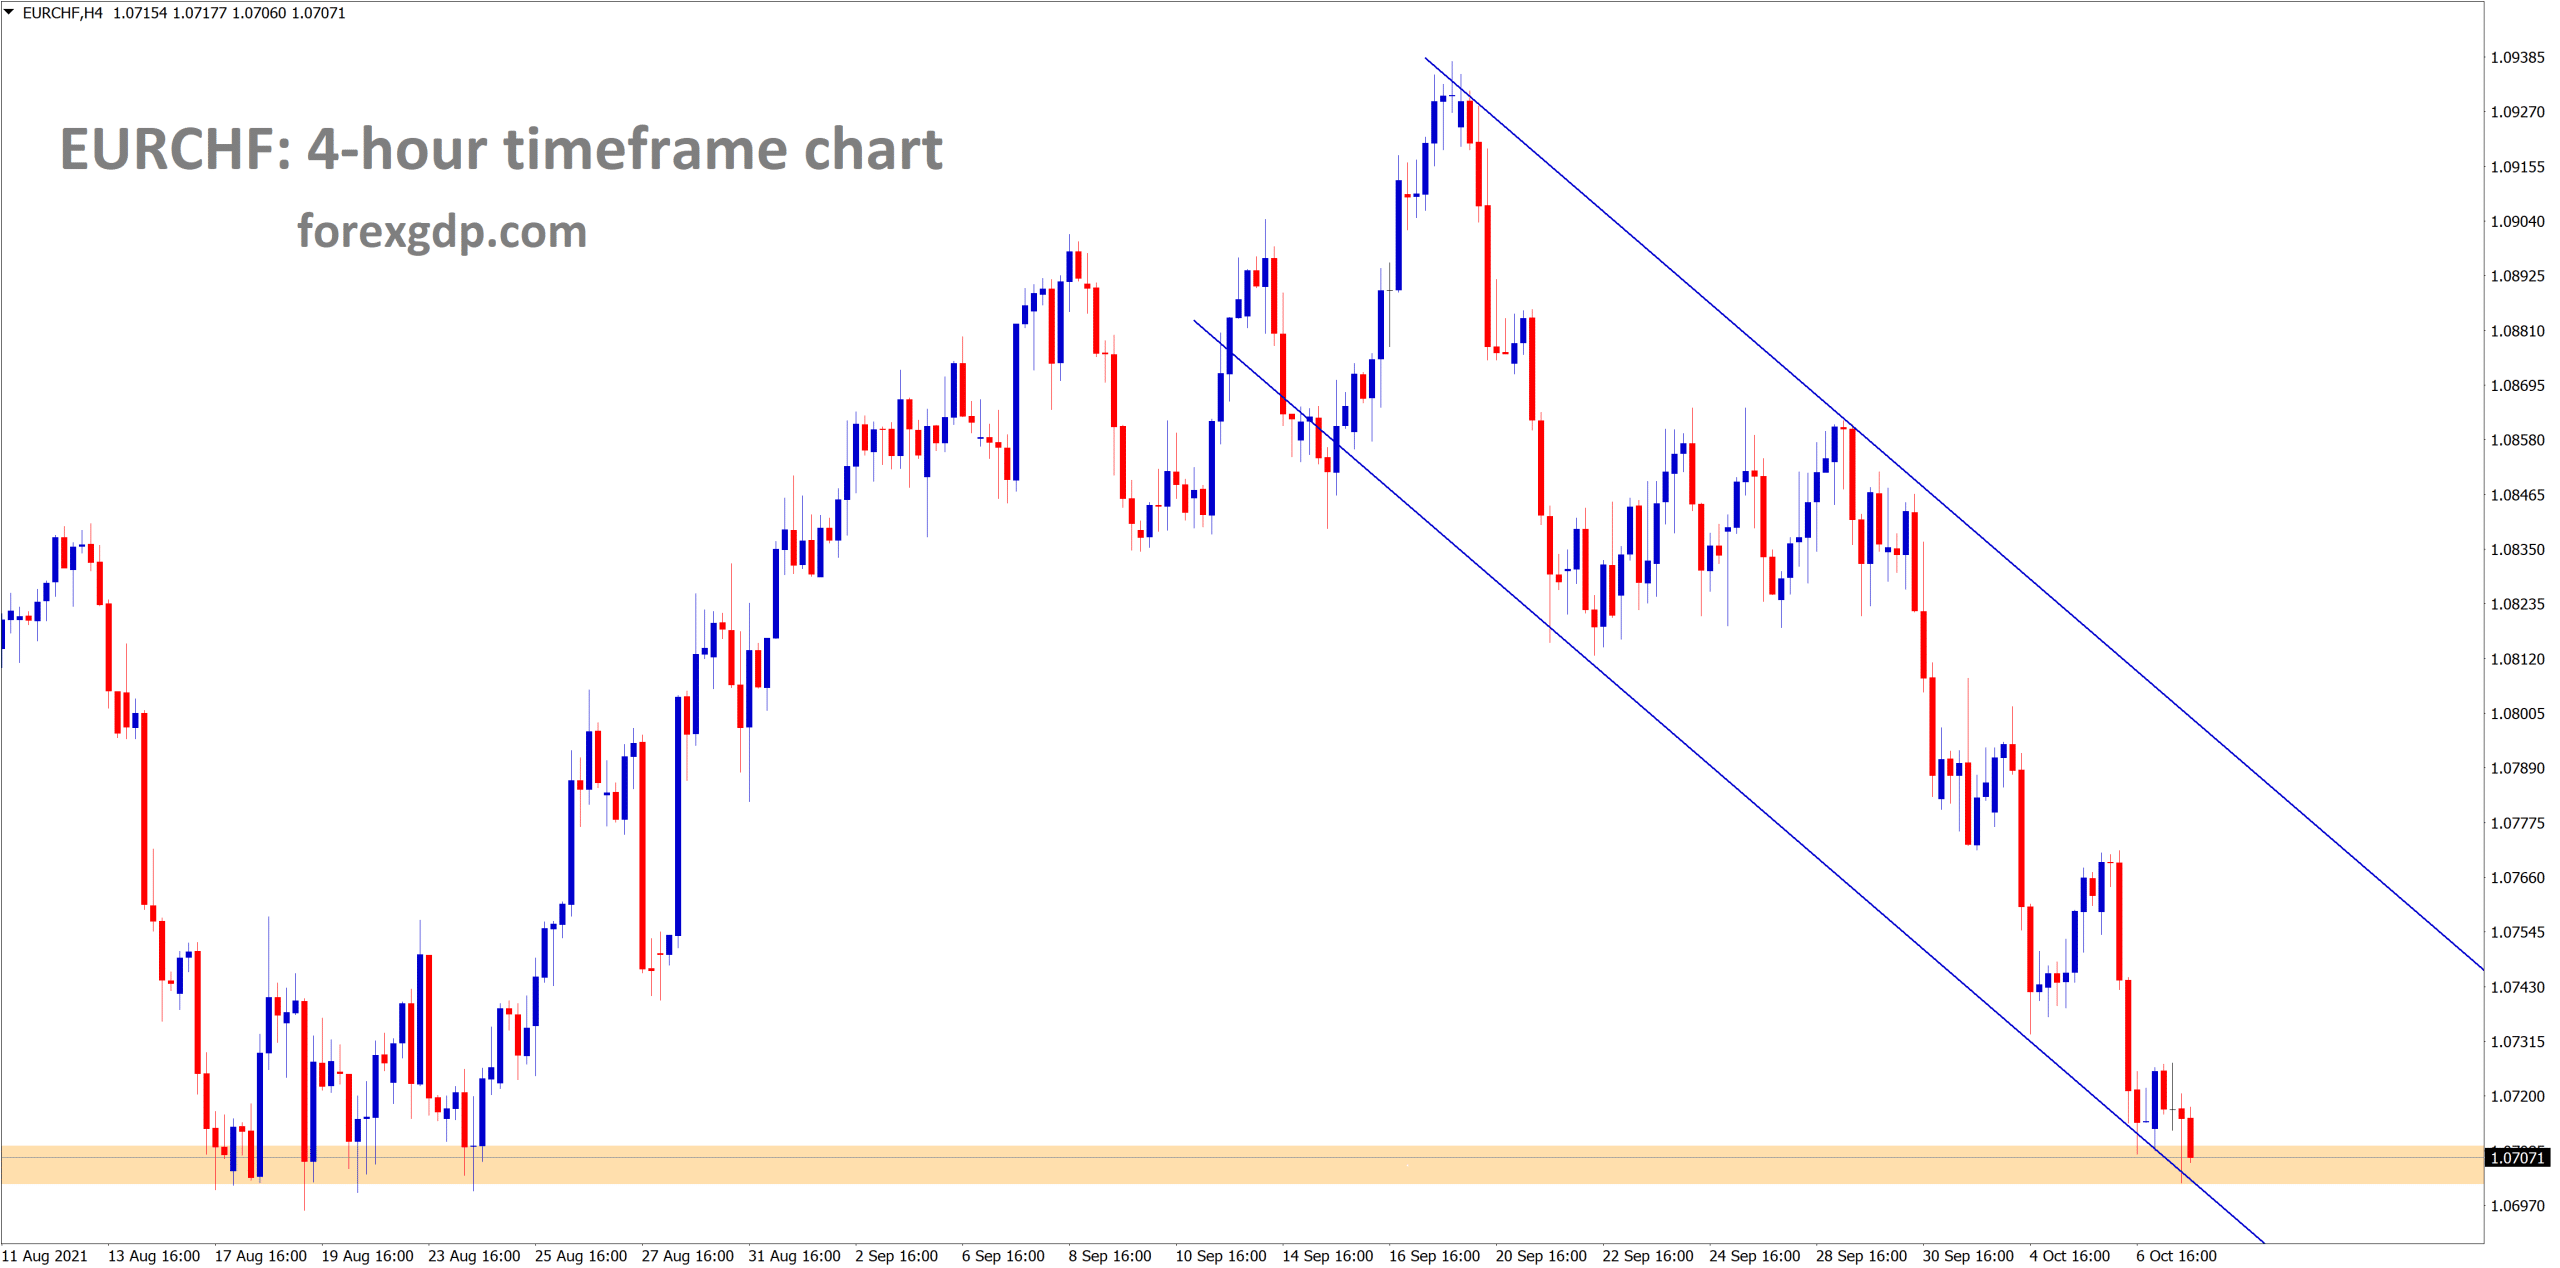 EURCHF is standing exactly at the support area and the lower low level of descending channel